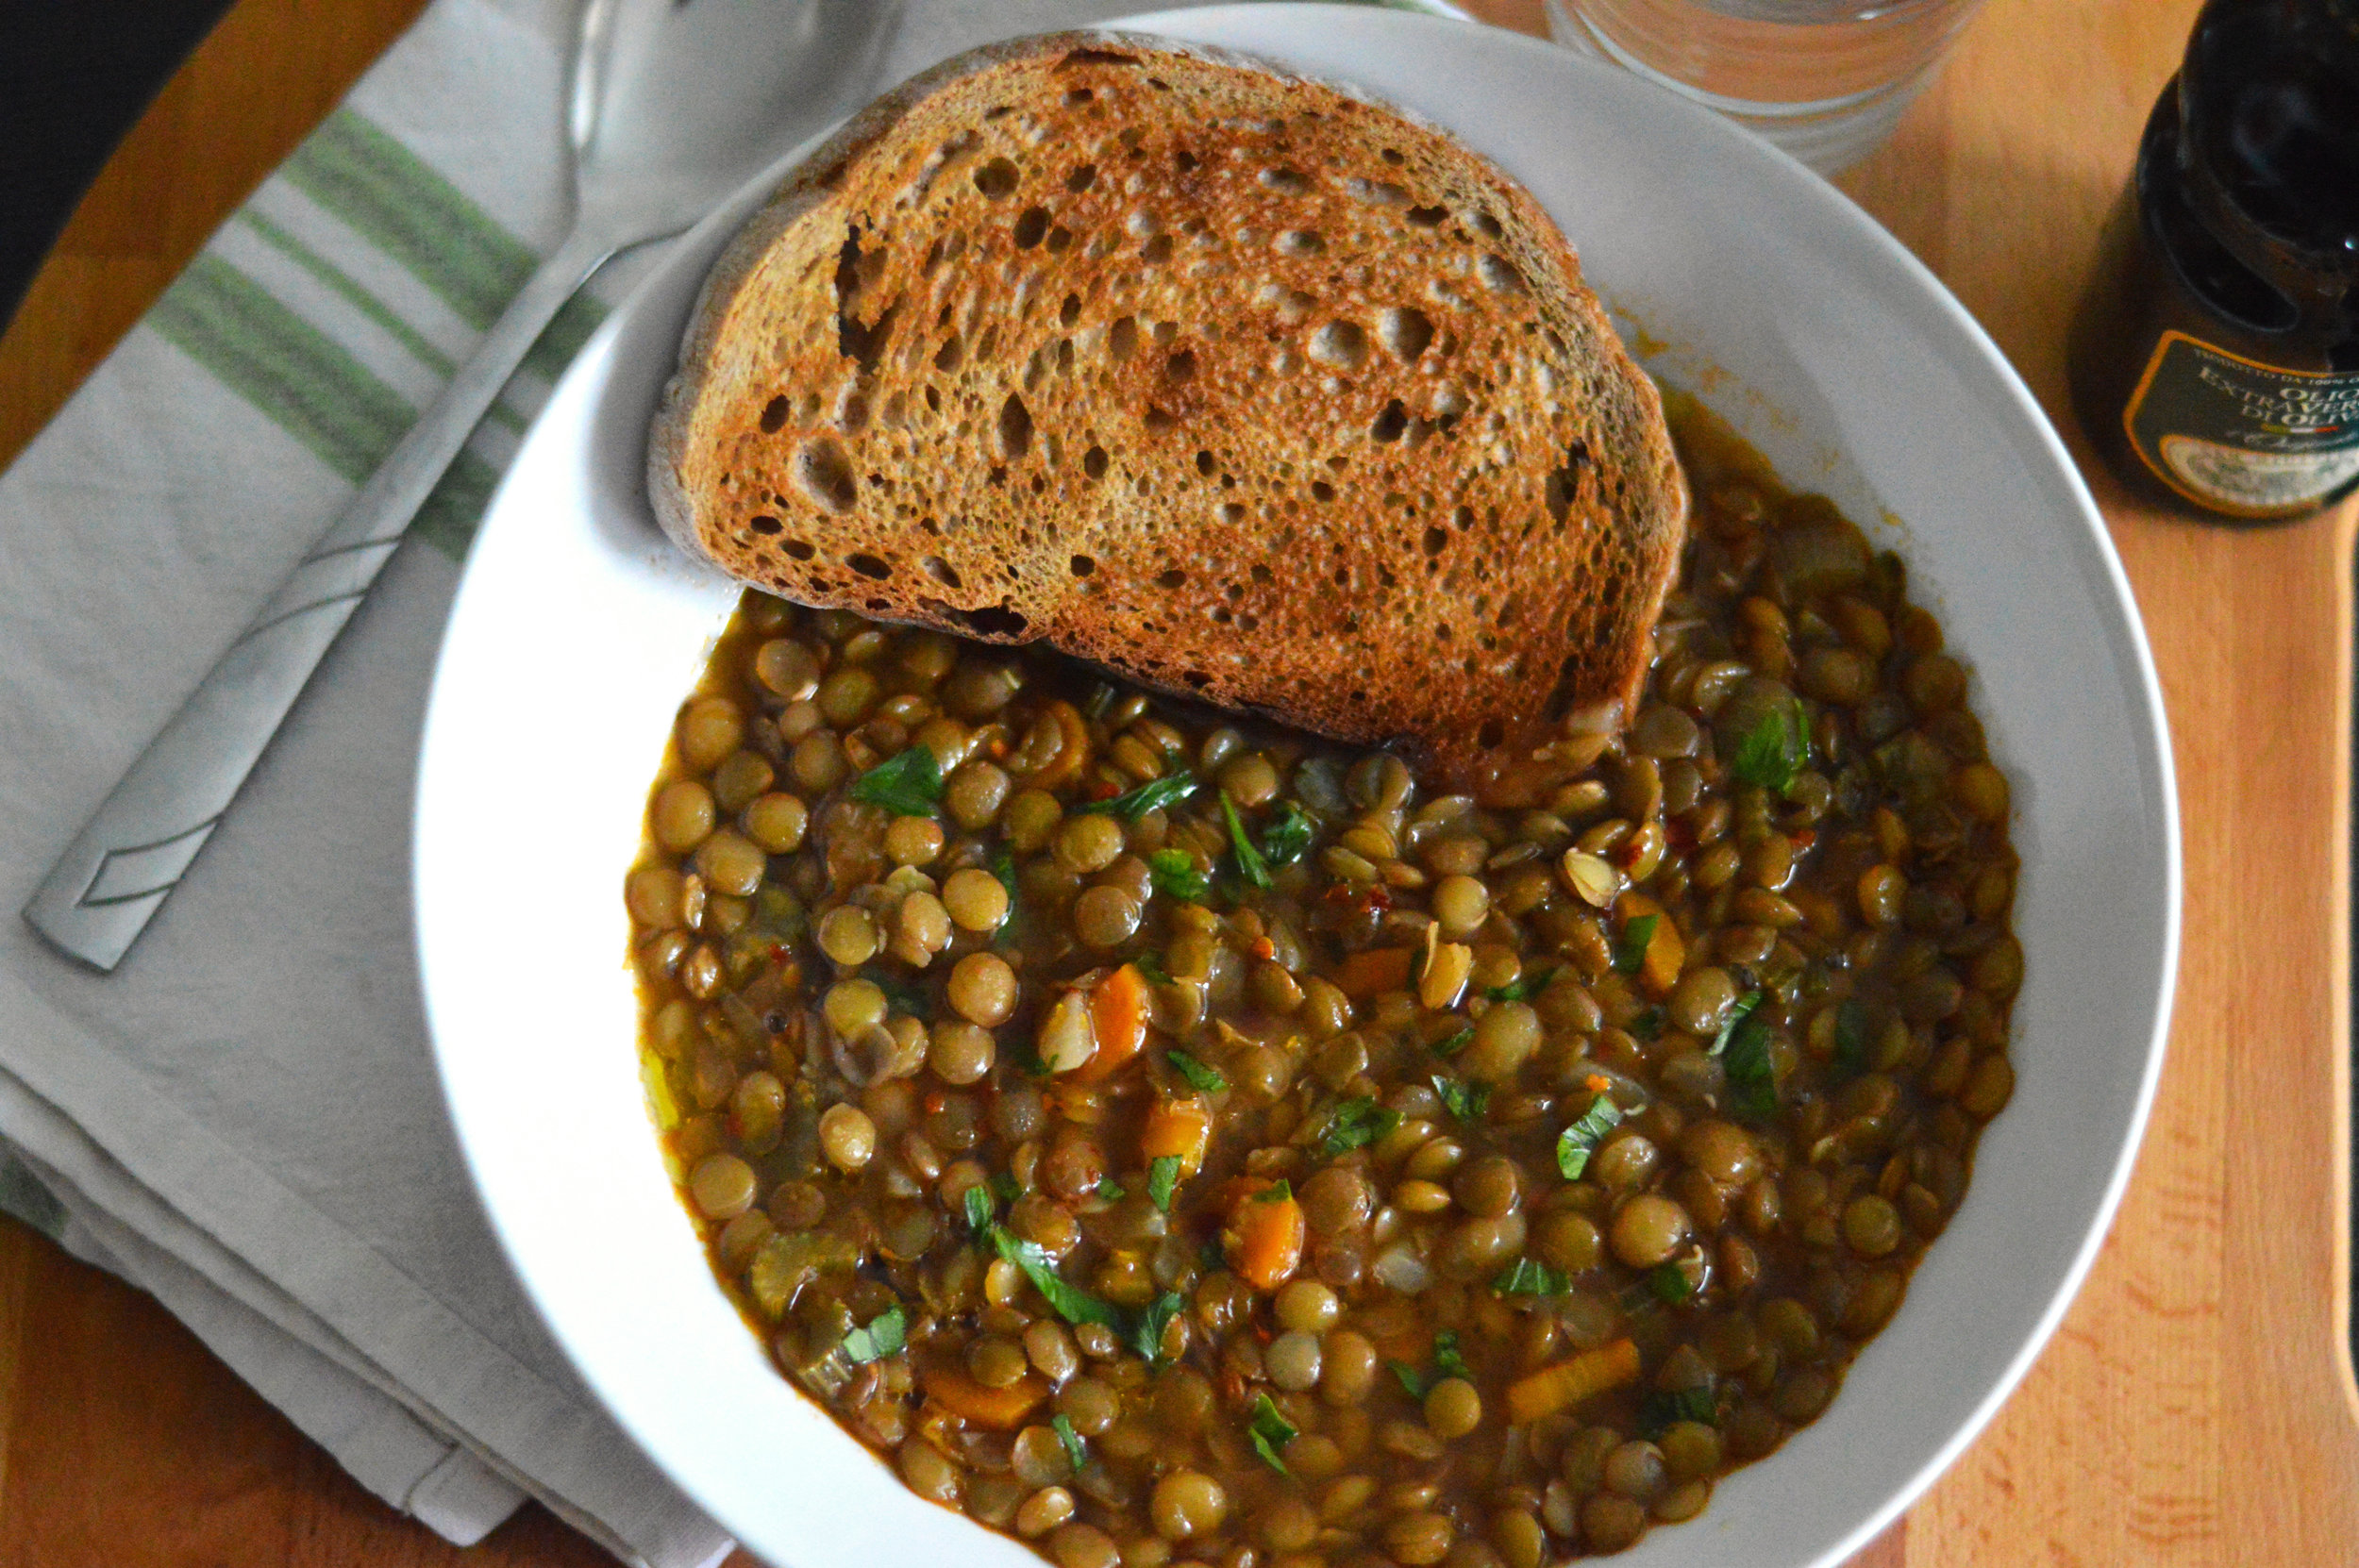 Puy Lentil Soup - This simple lentil soup recipe is hearty, vegan and gluten free! This tasty soup can be ready and on your table within 1 hour making it a great soup to keep in your arsenal of recipes.